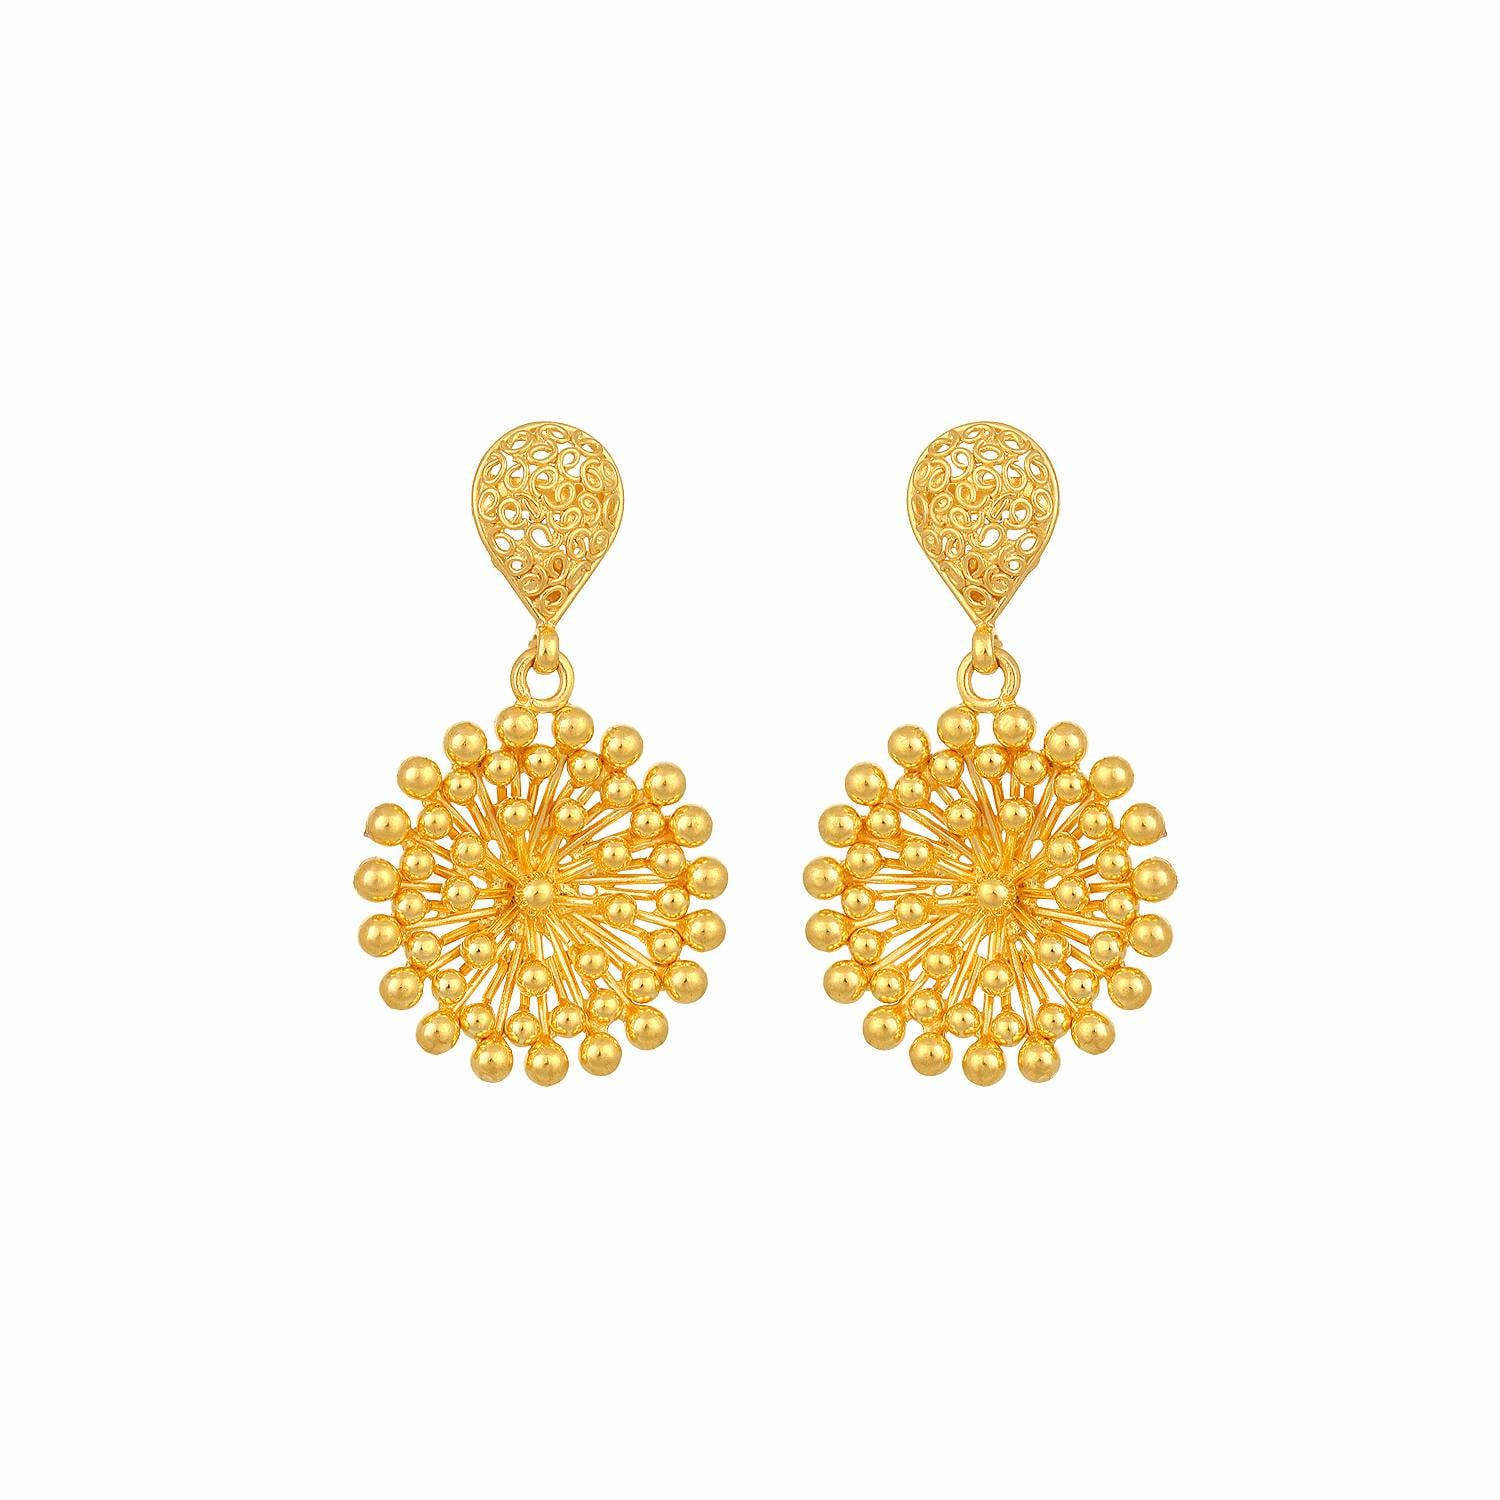 Images of Tanishq Jewellery Designs Pearl - #FAN